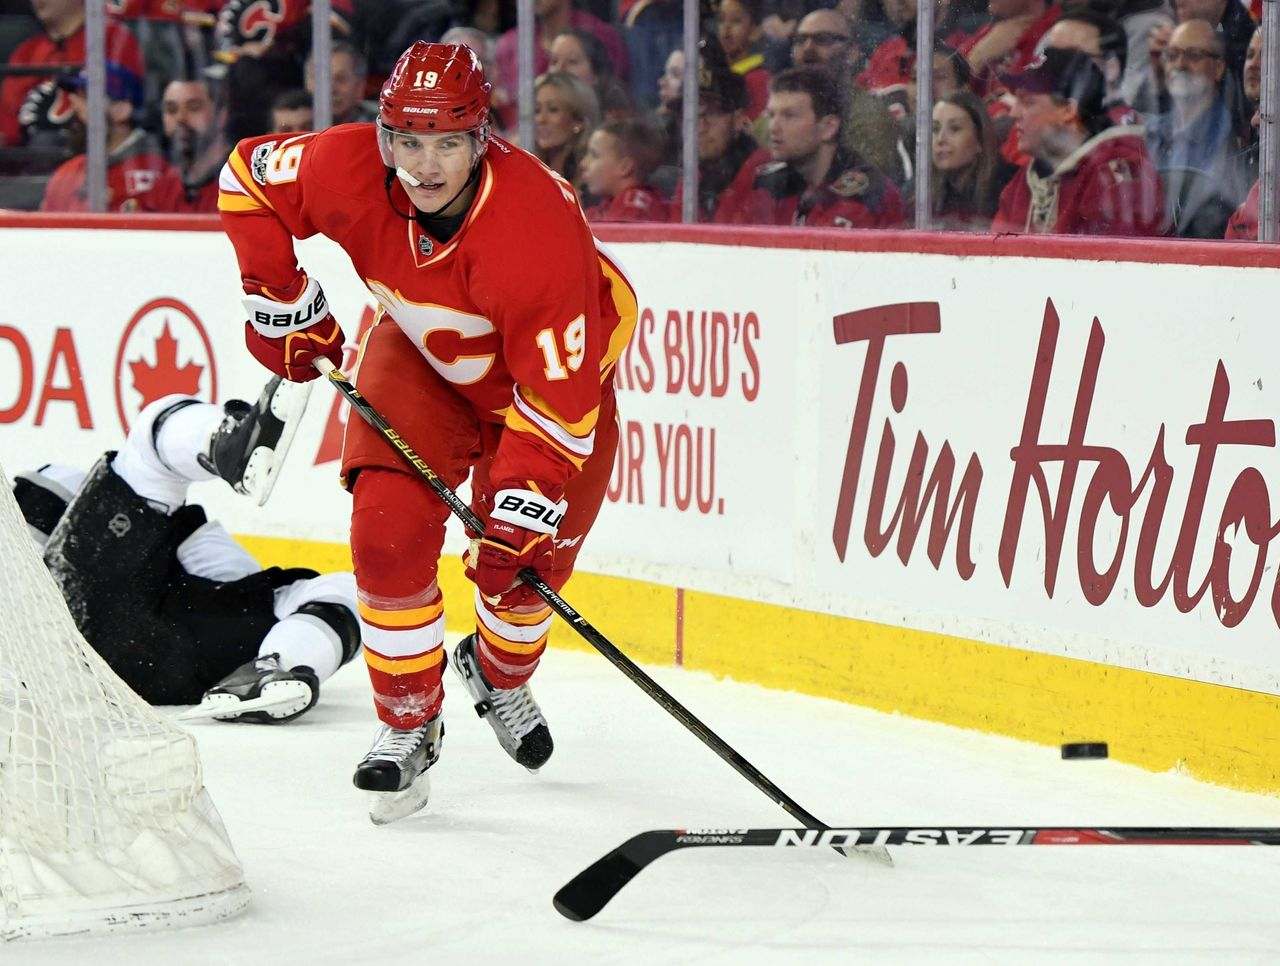 Cropped 2017 03 20t022333z 1052290805 nocid rtrmadp 3 nhl los angeles kings at calgary flames